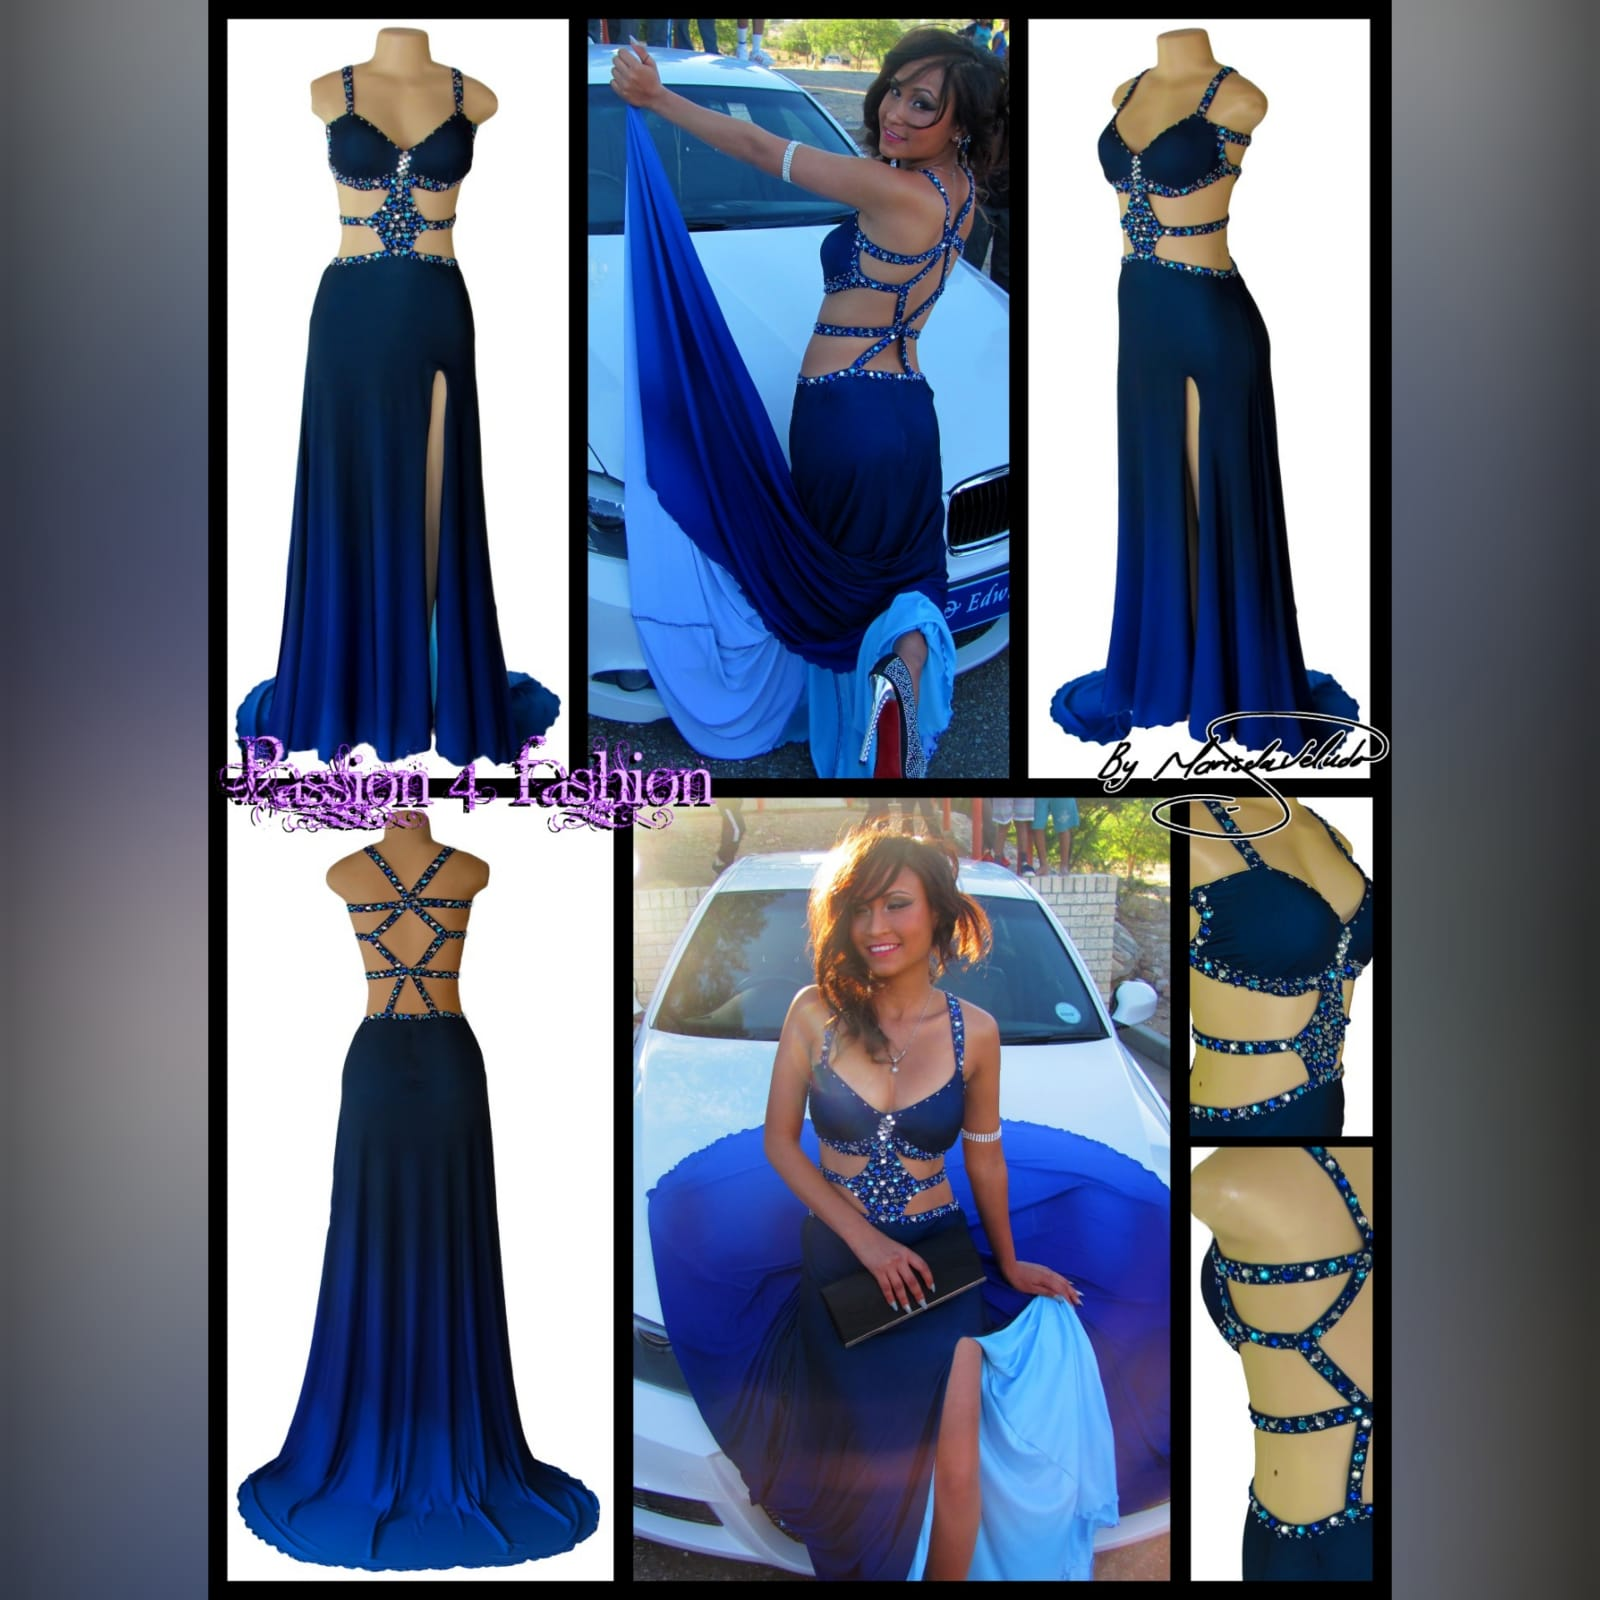 Royal blue and navy blue ombre sexy prom dress 9 royal blue and navy blue ombre sexy prom dress. With a slit and a train. With tummy and back openings detailed with silver, blue and turquoise beads.